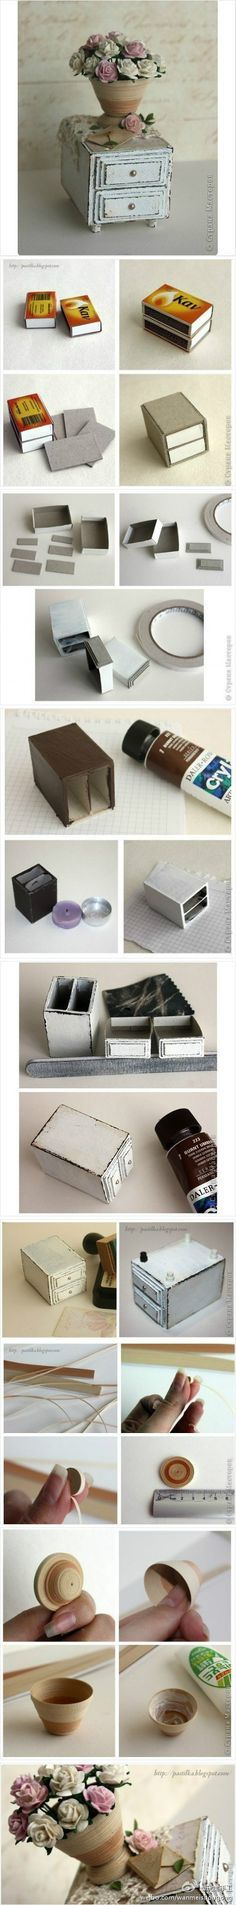 neat idea #diy #crafts www.BlueRainbowDesign.com